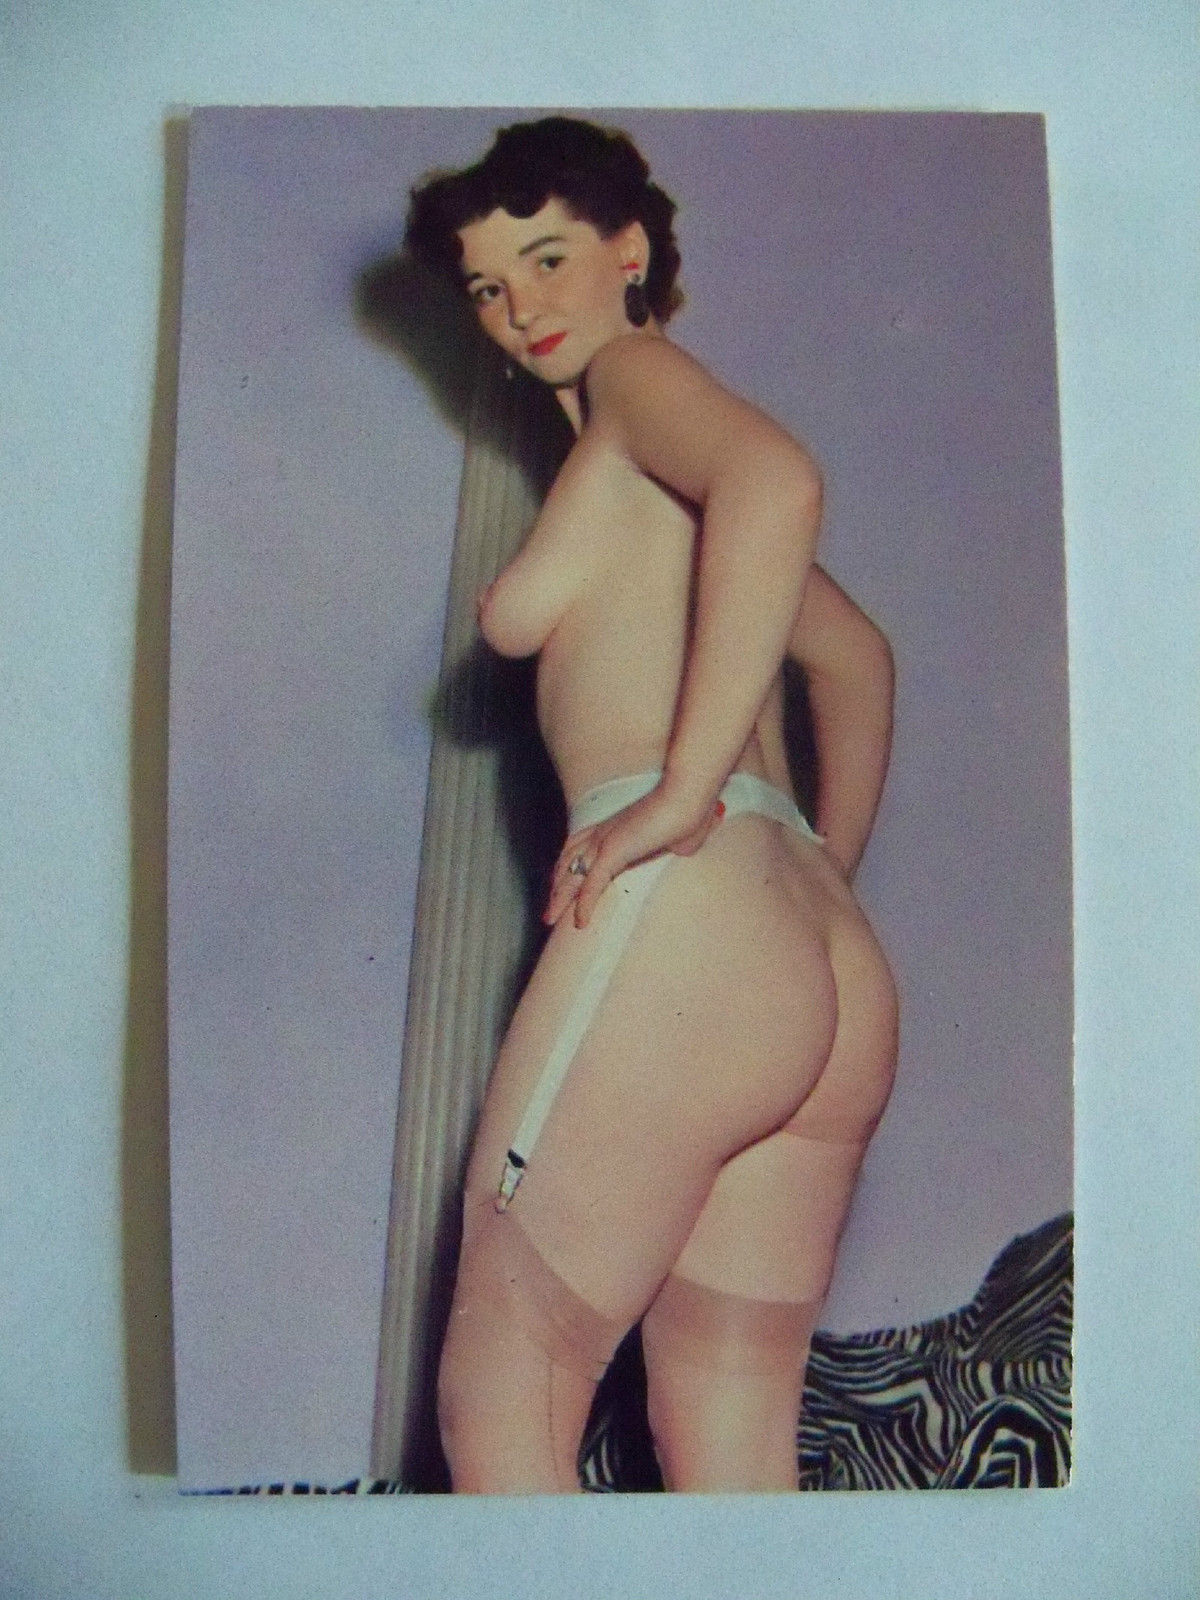 Wonderful nude pic of a retro wife. So hot!